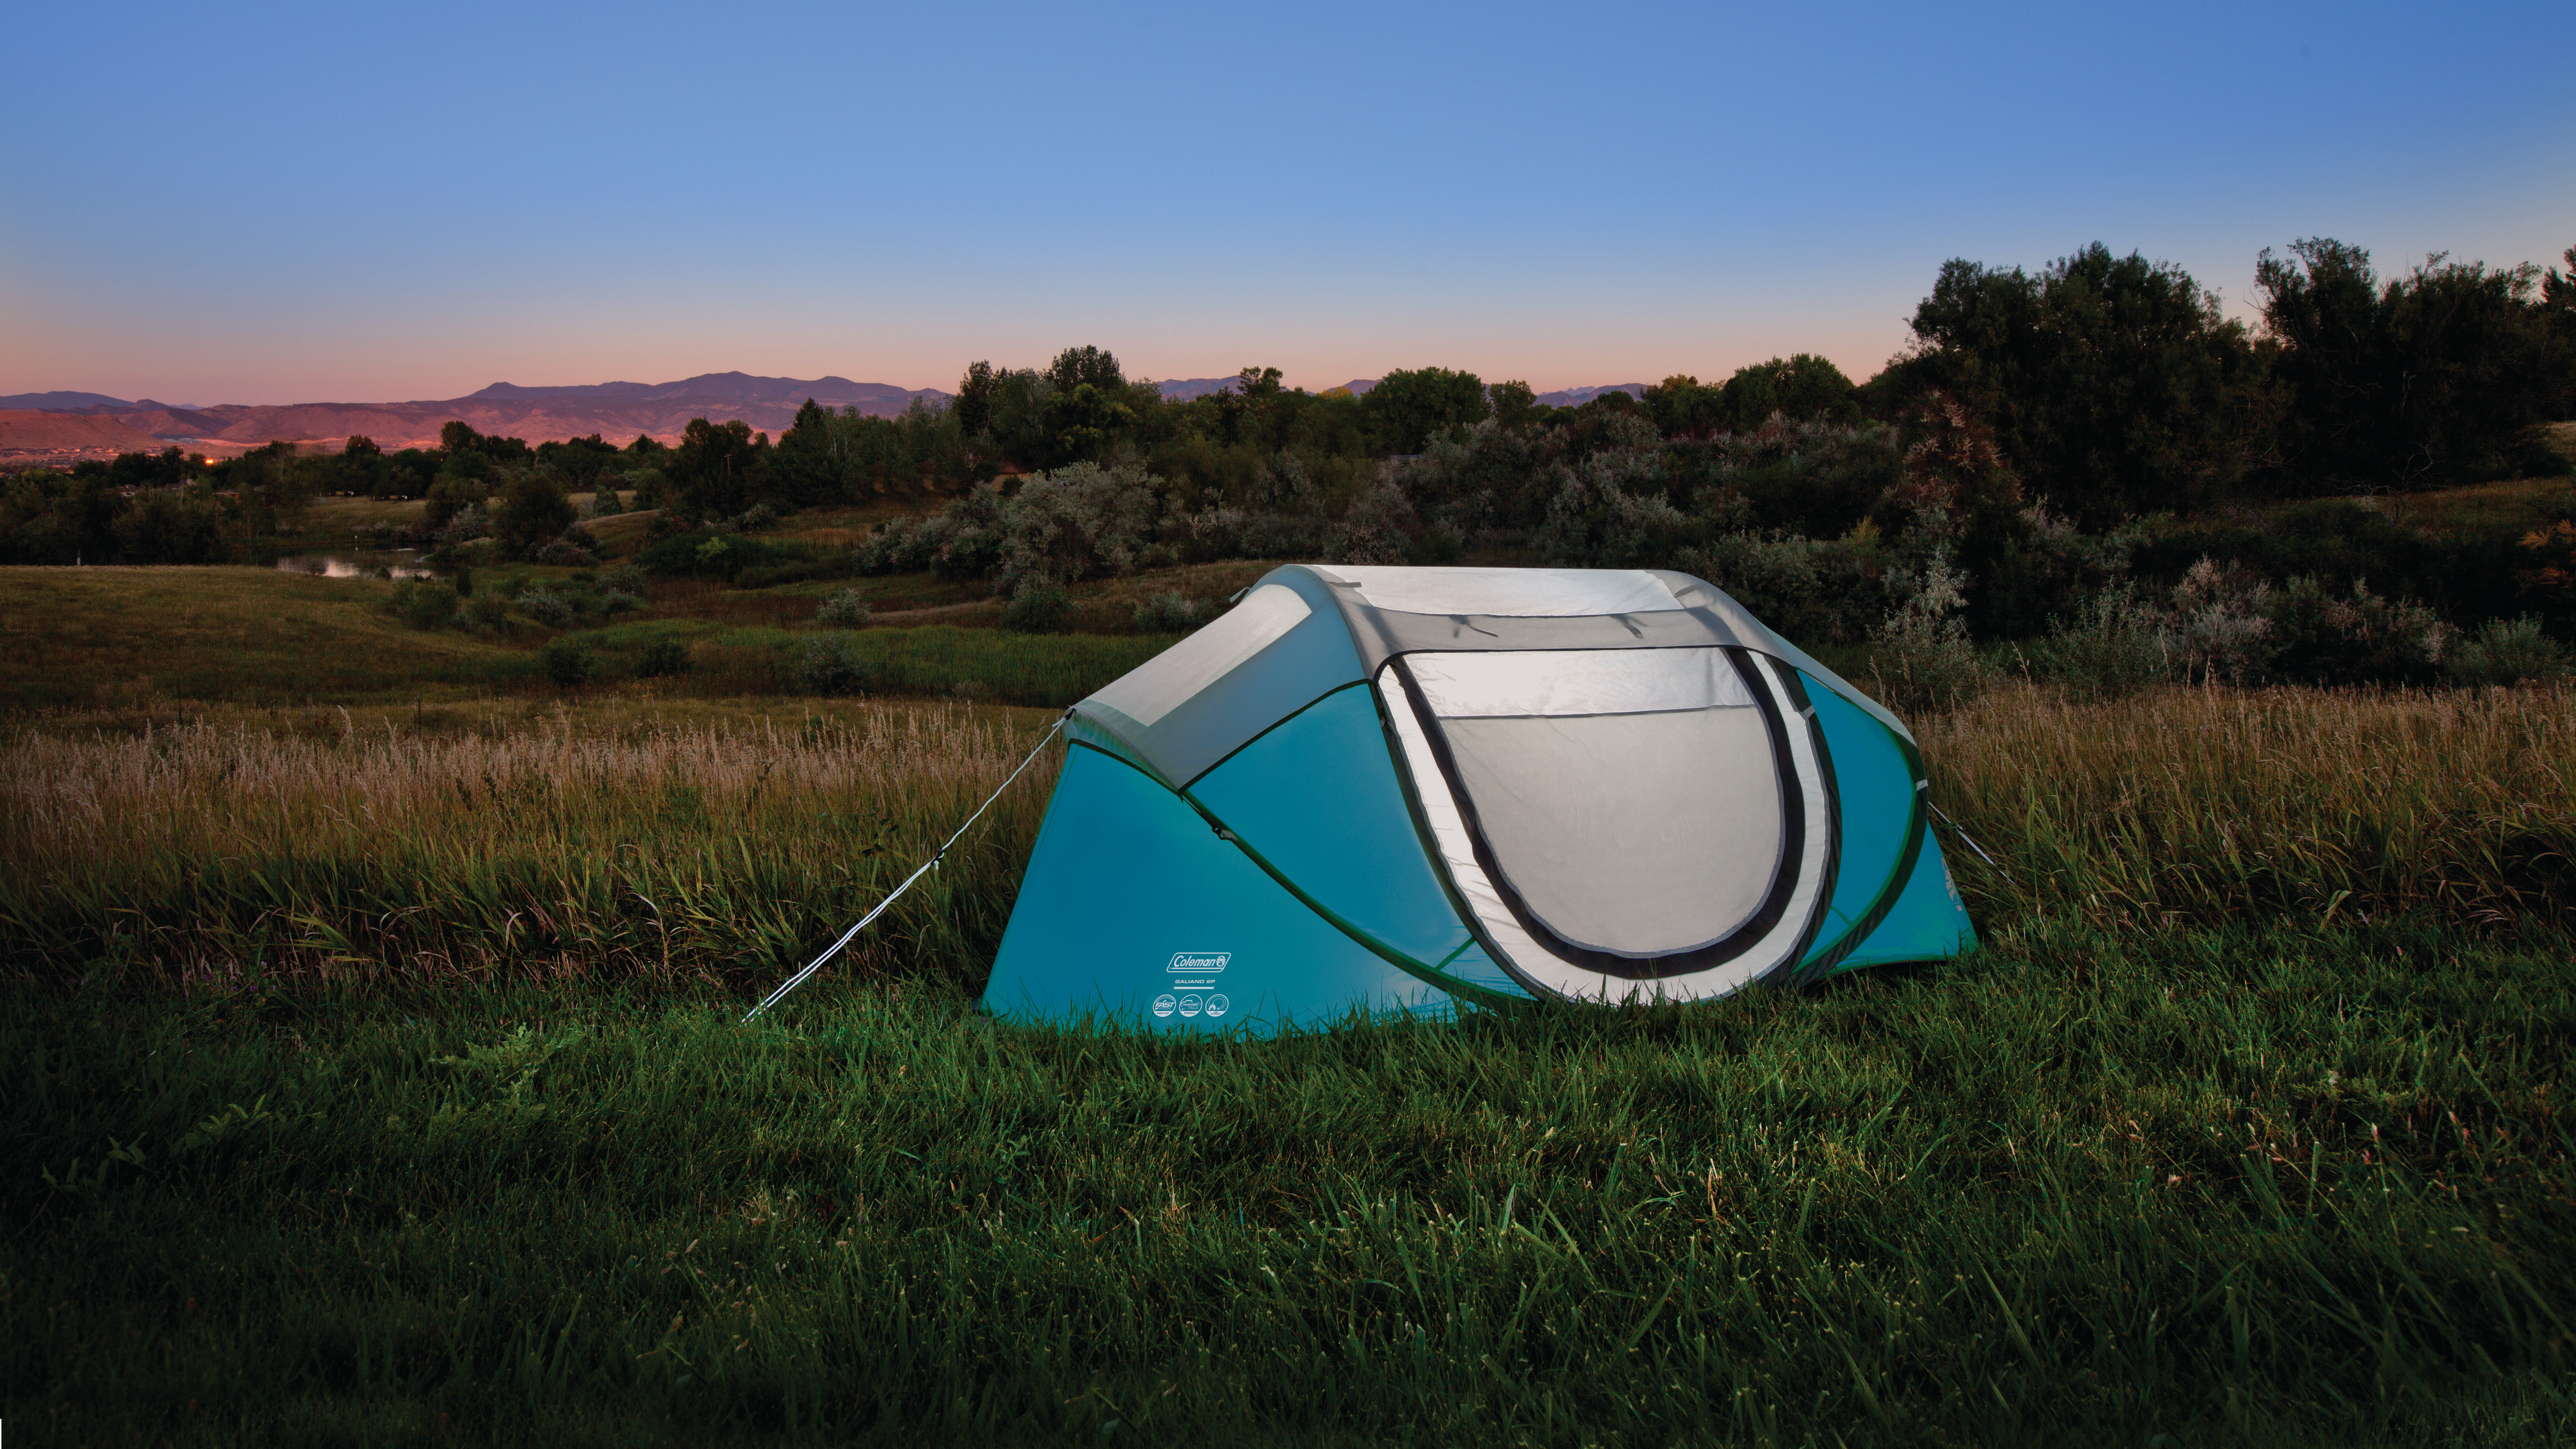 13 Best Camping Tents images | Tent